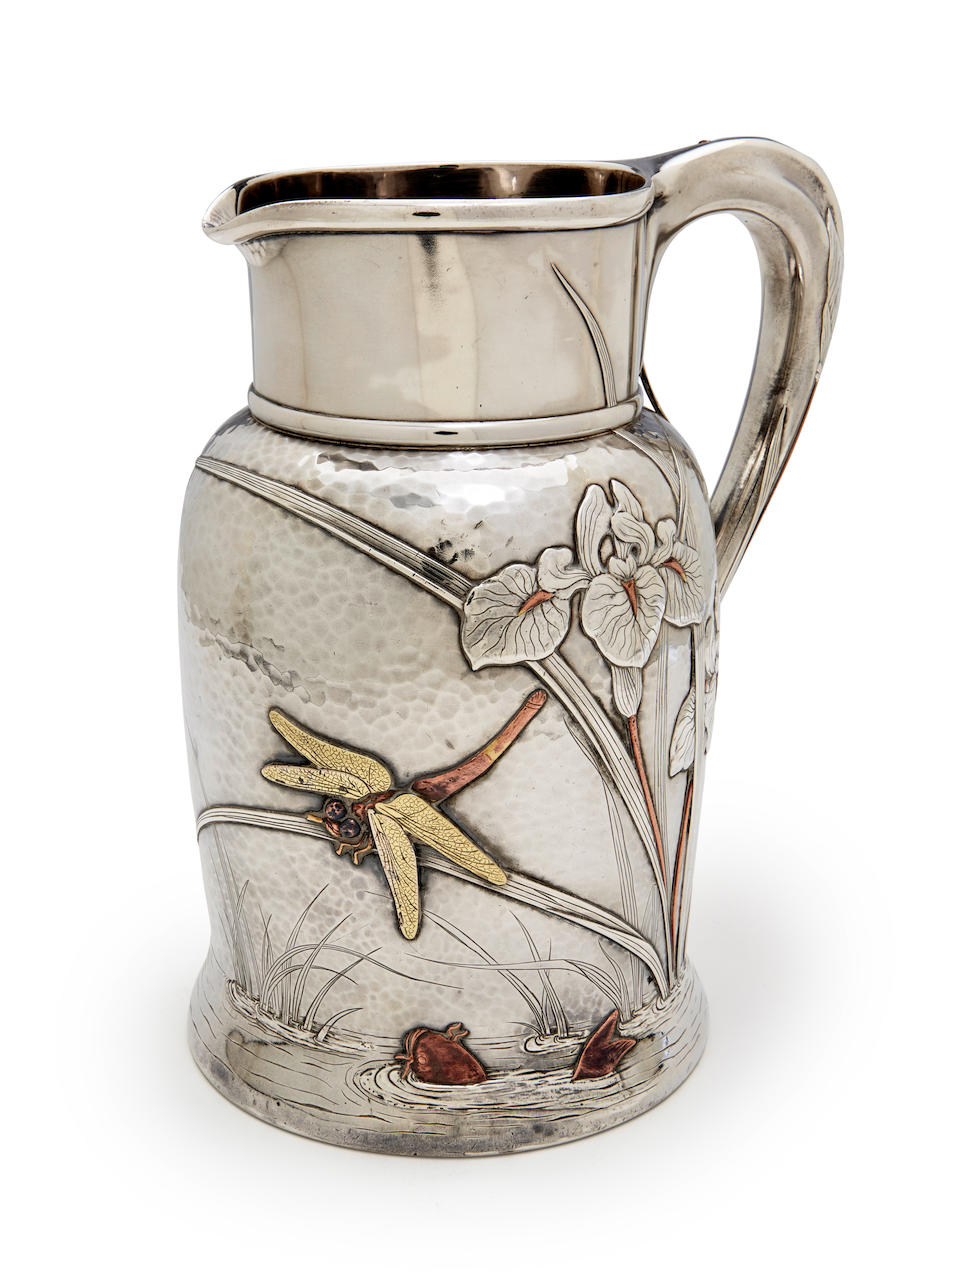 Tiffany & Co. (Founded 1837) Water Pitchercirca 1880silver and mixed-metals, in the Japanesque taste, spot-hammered with applied decoration, stamped 'Tiffany & Co. Makers 5051/ Sterling Silver/8280/925-1000' and initial M for Edward C. Moore, 1873-91height 9in (23cm)gross weight 36oz